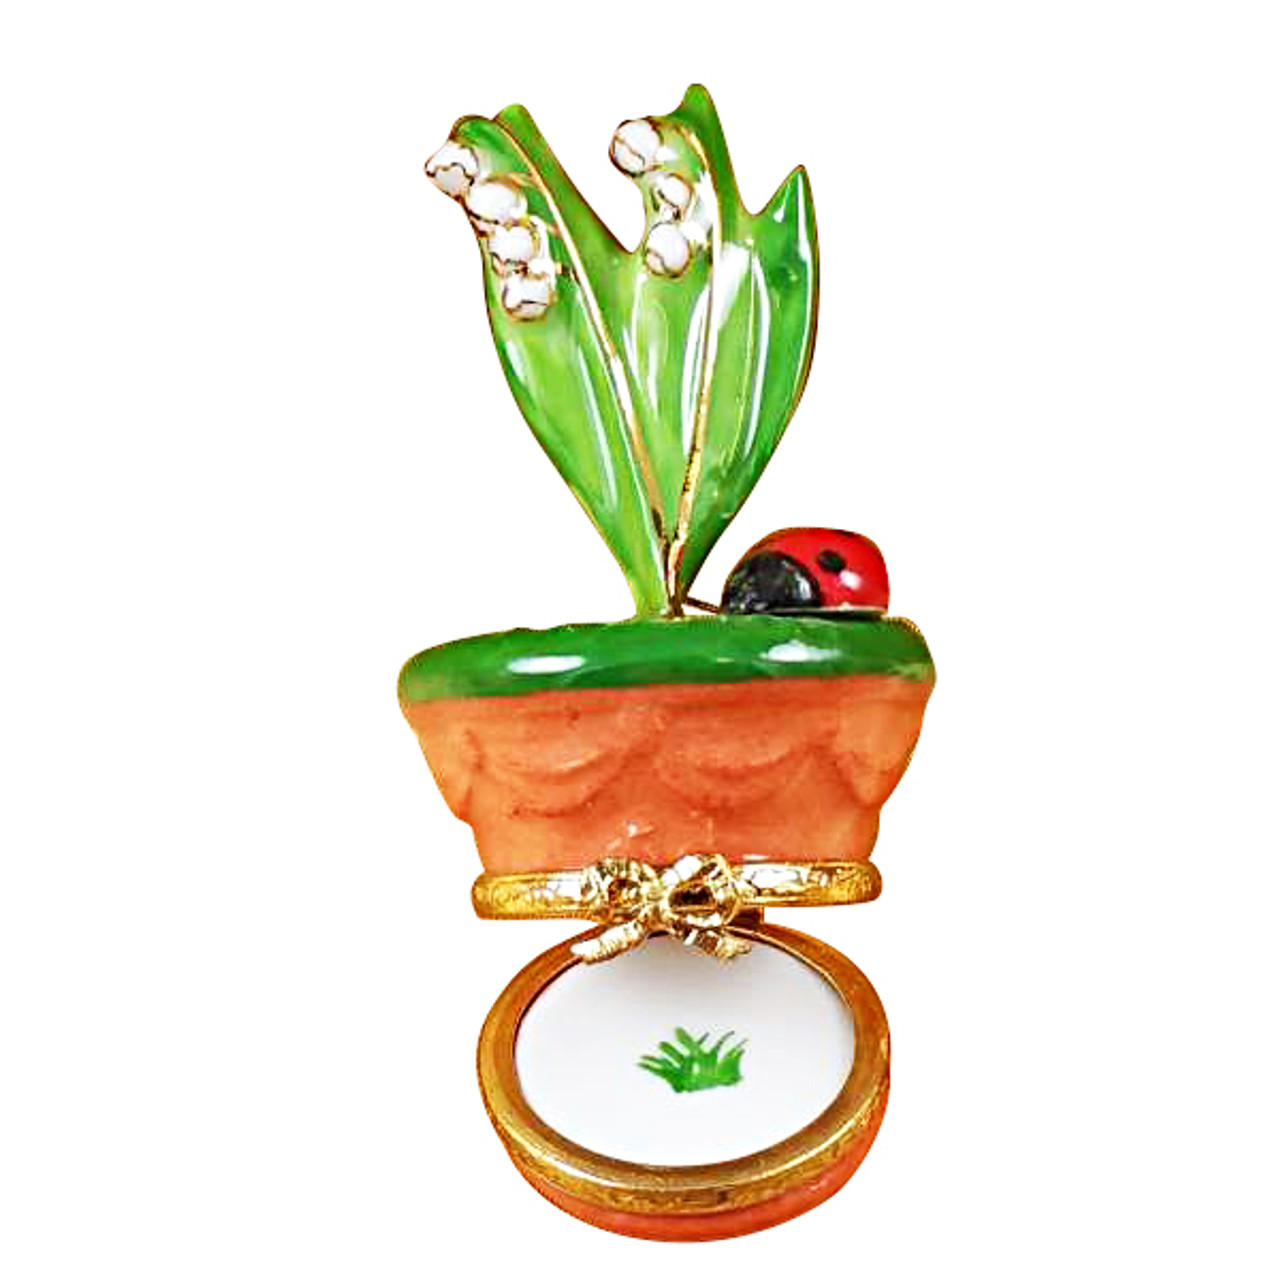 Lily Of The Valley W/Ladybug In Pot Rochard Limoges Box RK183-I